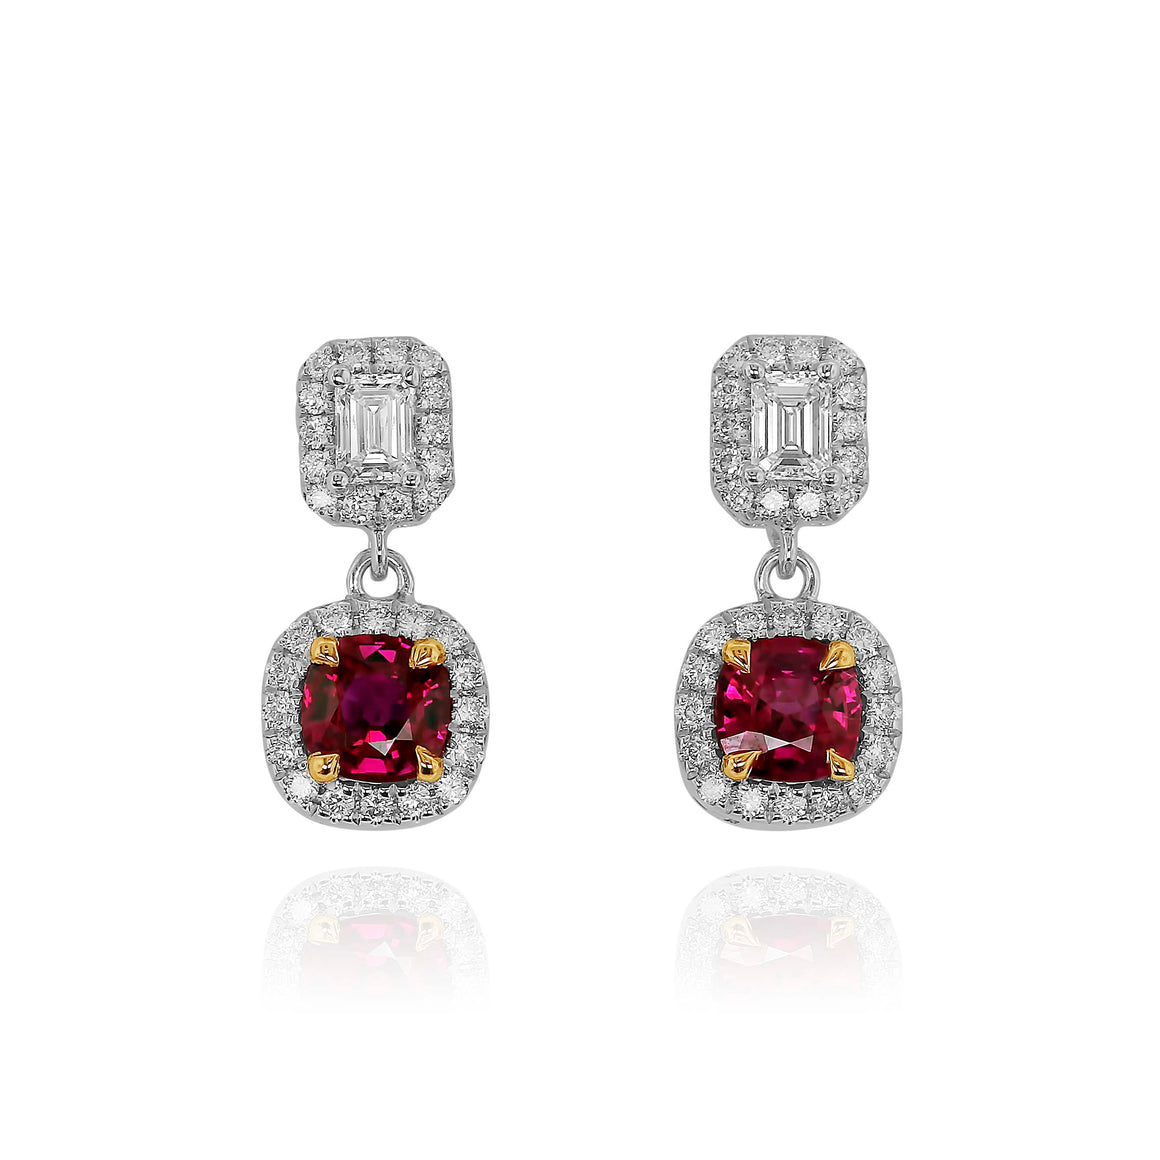 Yael 18k White Gold Ruby and Diamond Earrings